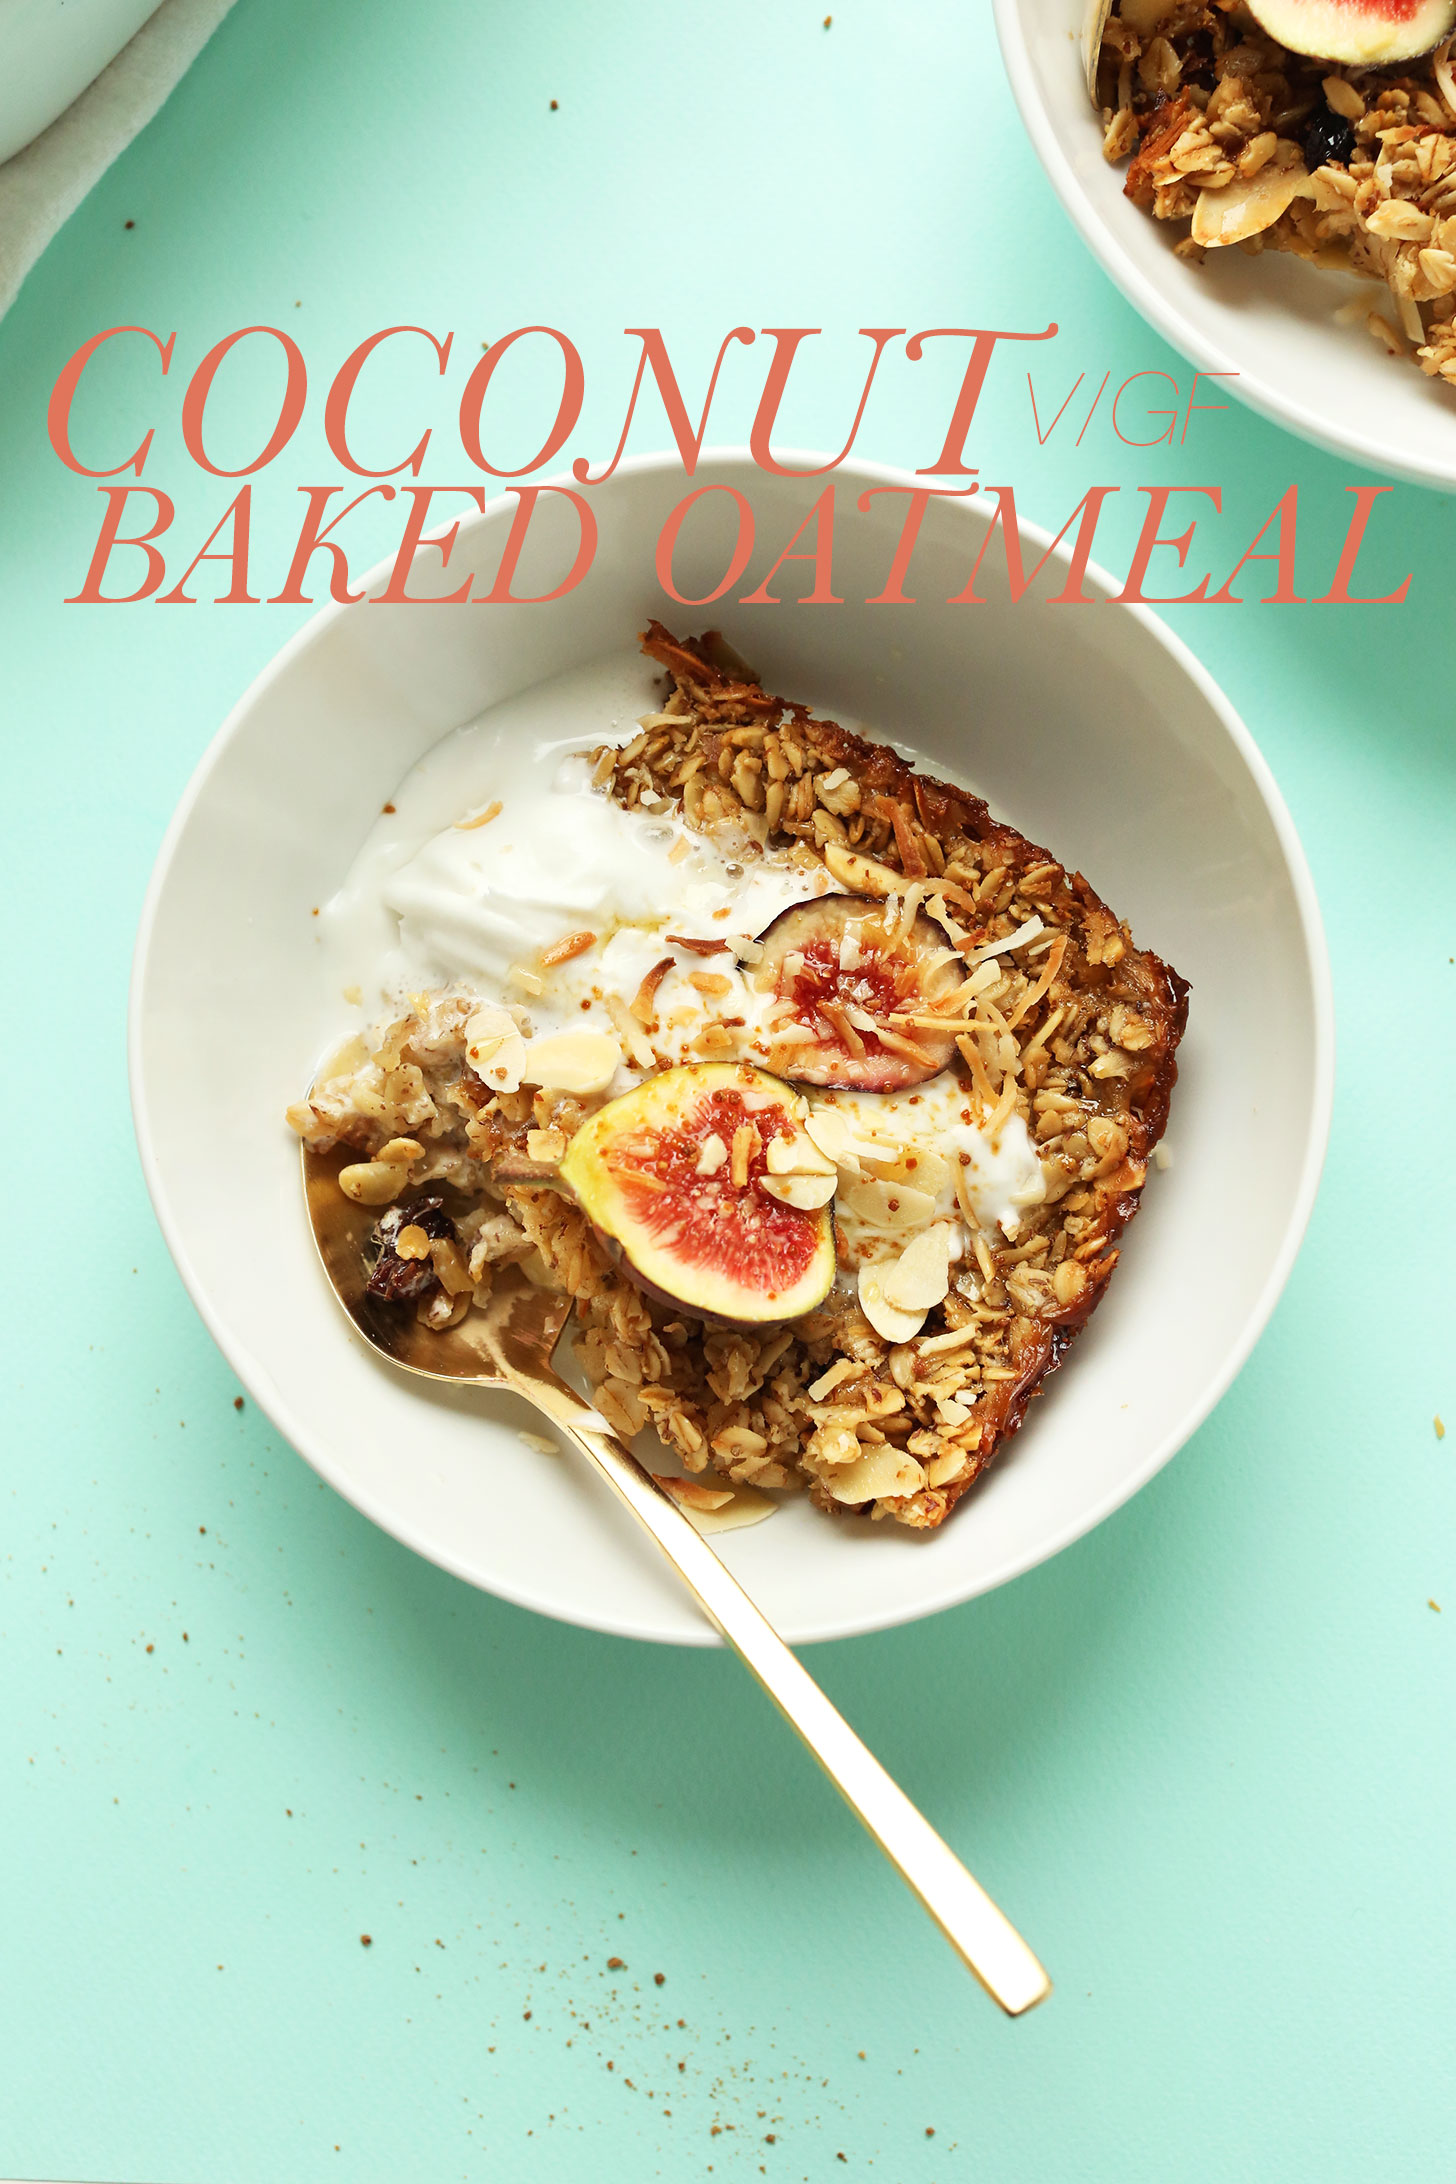 Having a bowl of vegan gluten-free Coconut Baked Oatmeal for a make-ahead simple breakfast